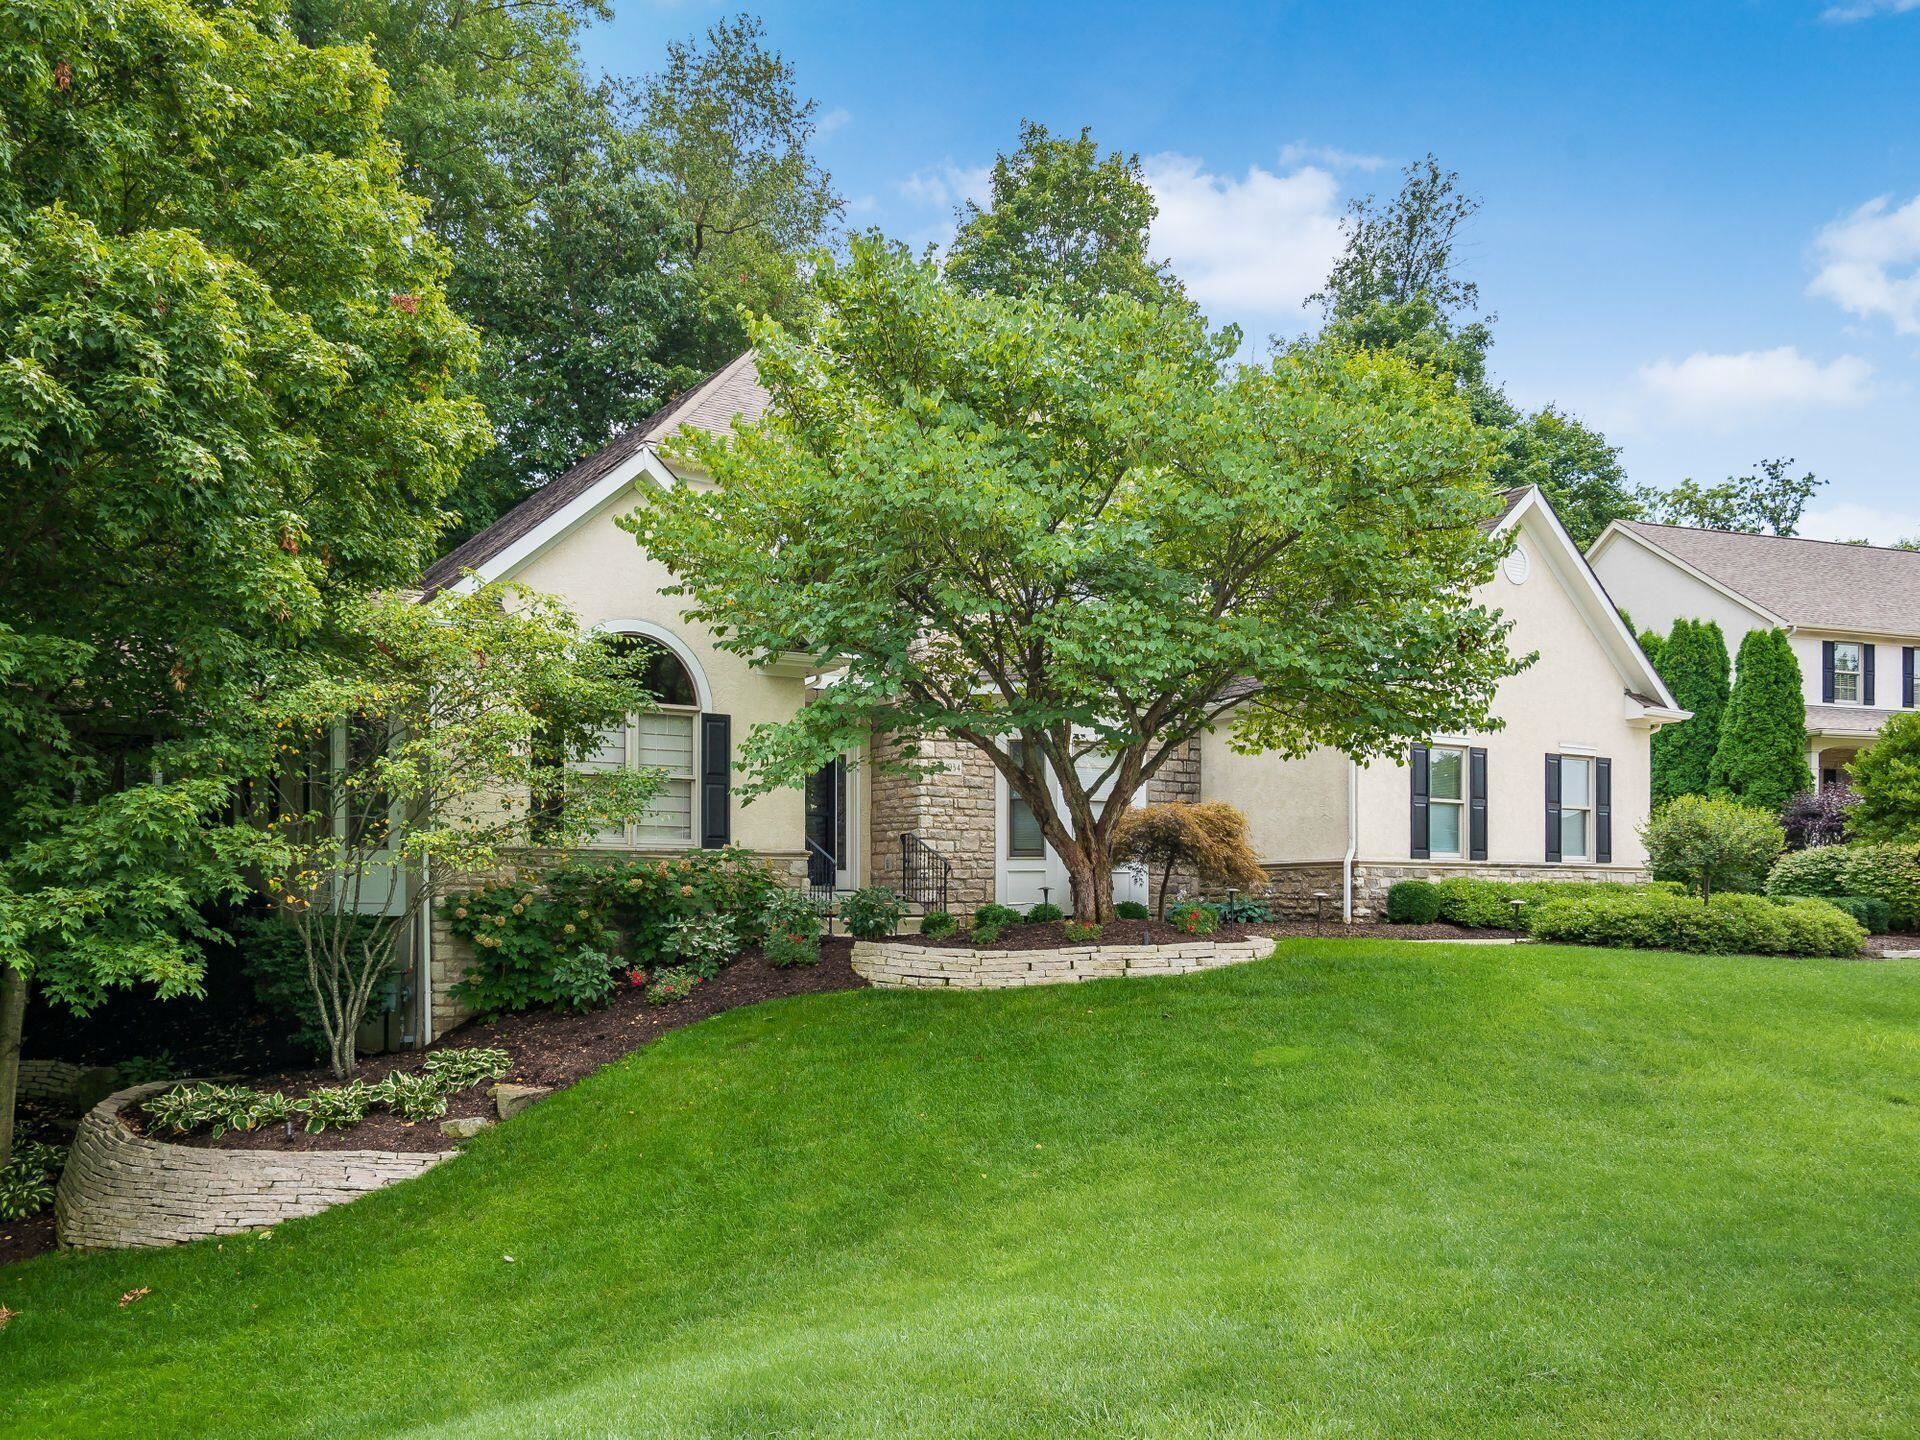 Photo of 4934 Royal County Down, Westerville, OH 43082 (MLS # 221035947)